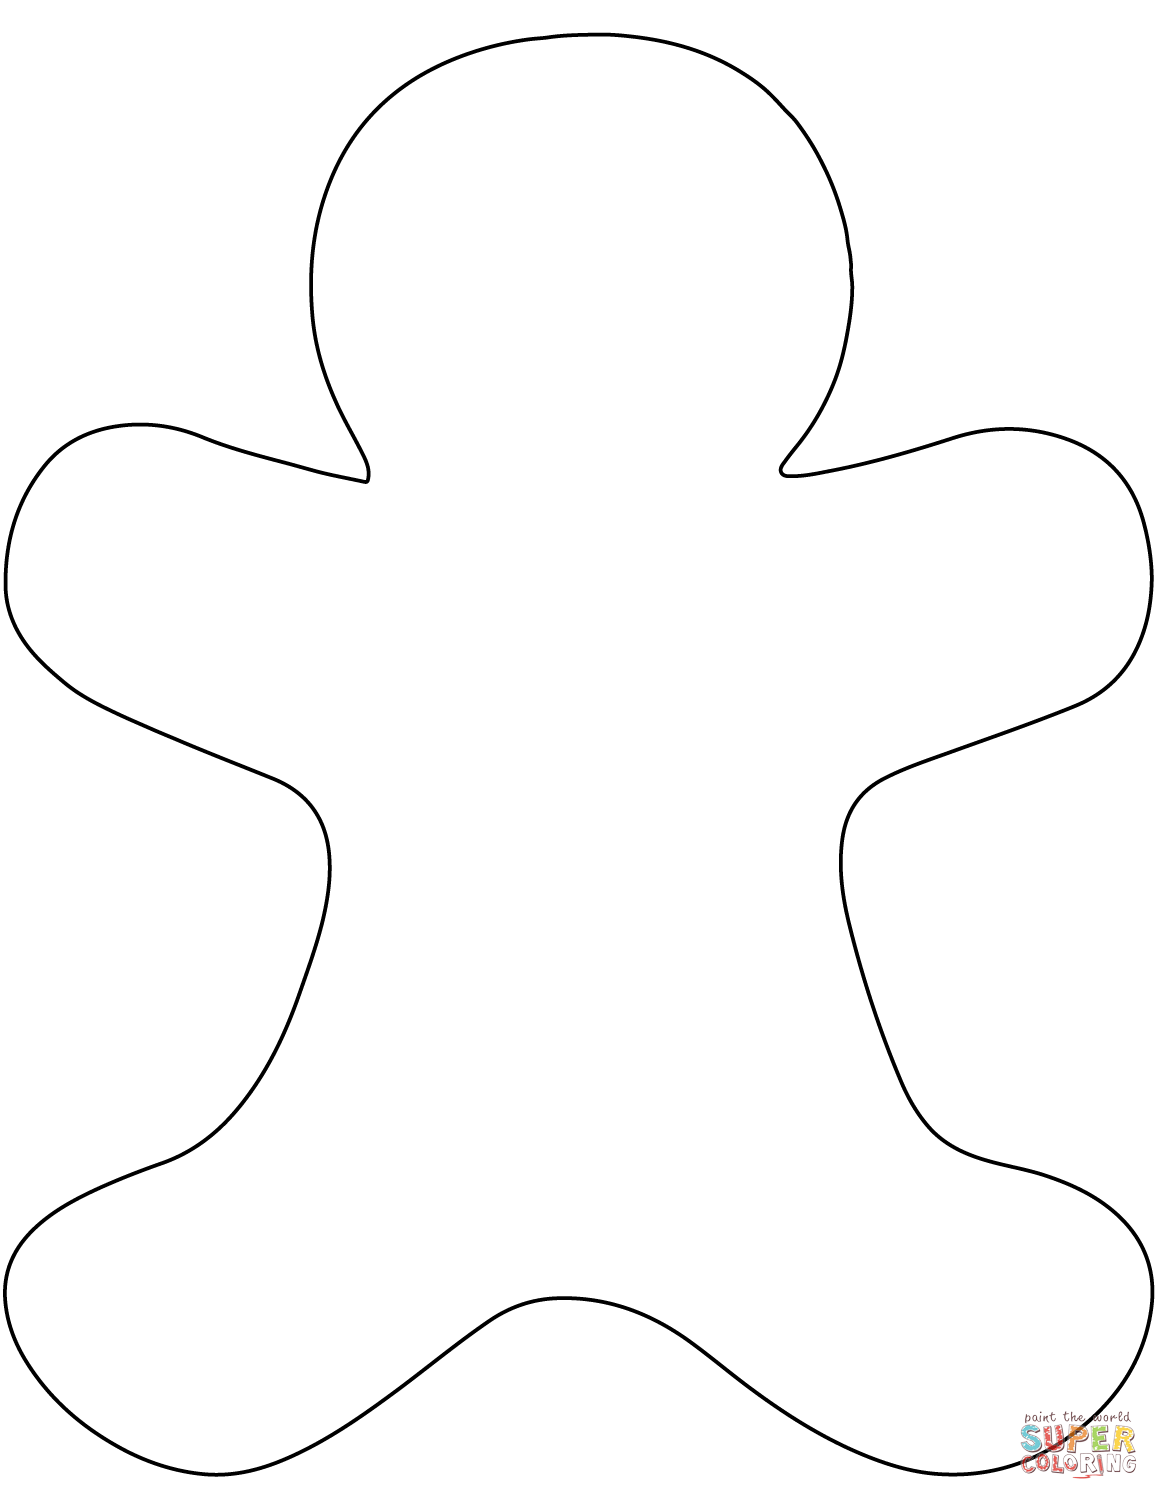 blank gingerbread man coloring page blank gingerbread man template gingerbread man coloring man page coloring blank gingerbread